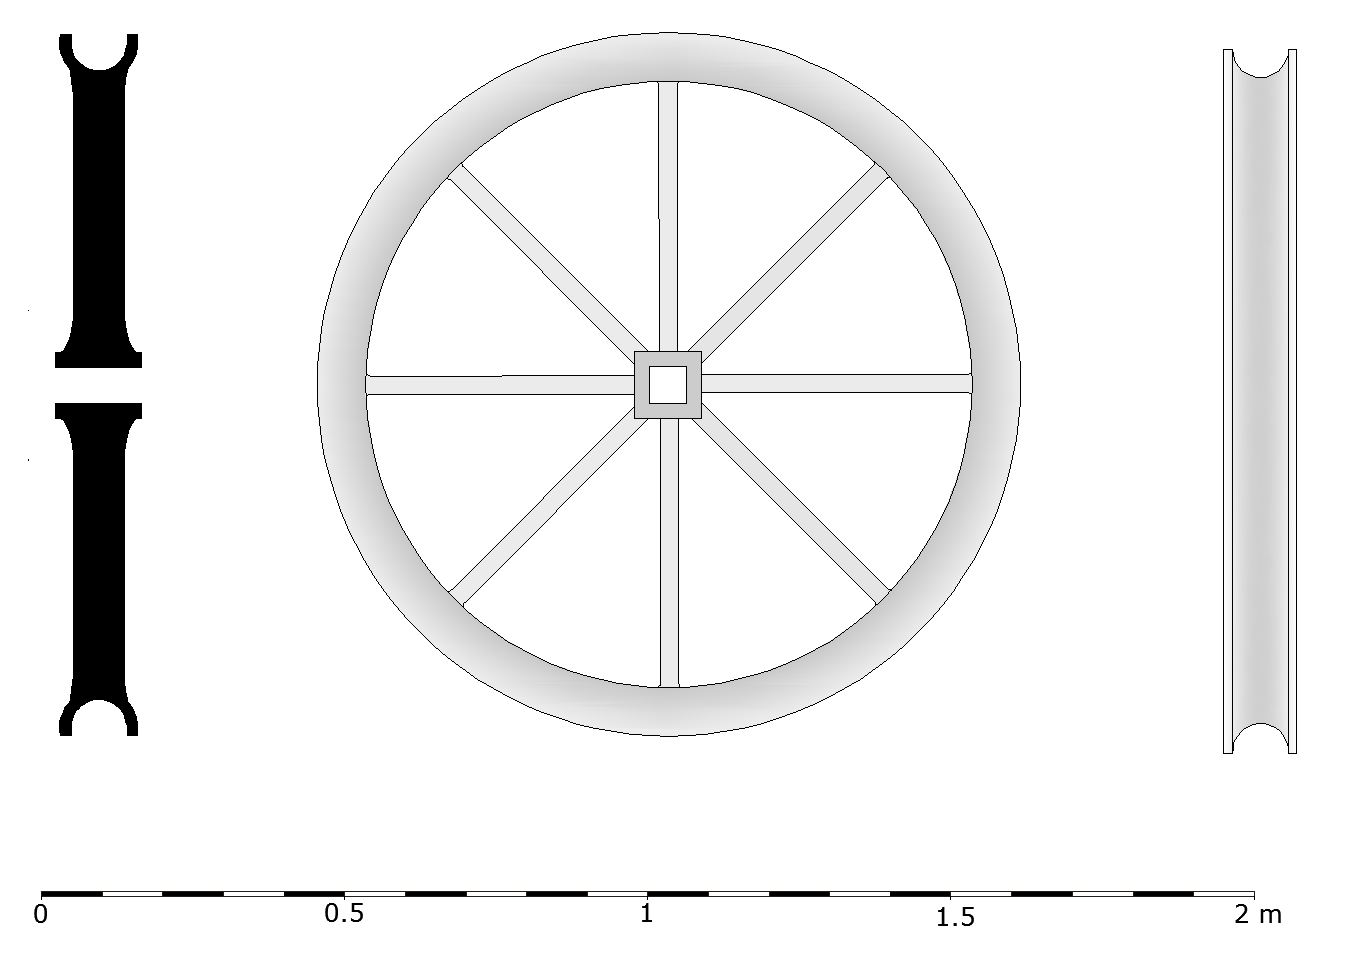 Reconstruction drawing of a sheave wheel